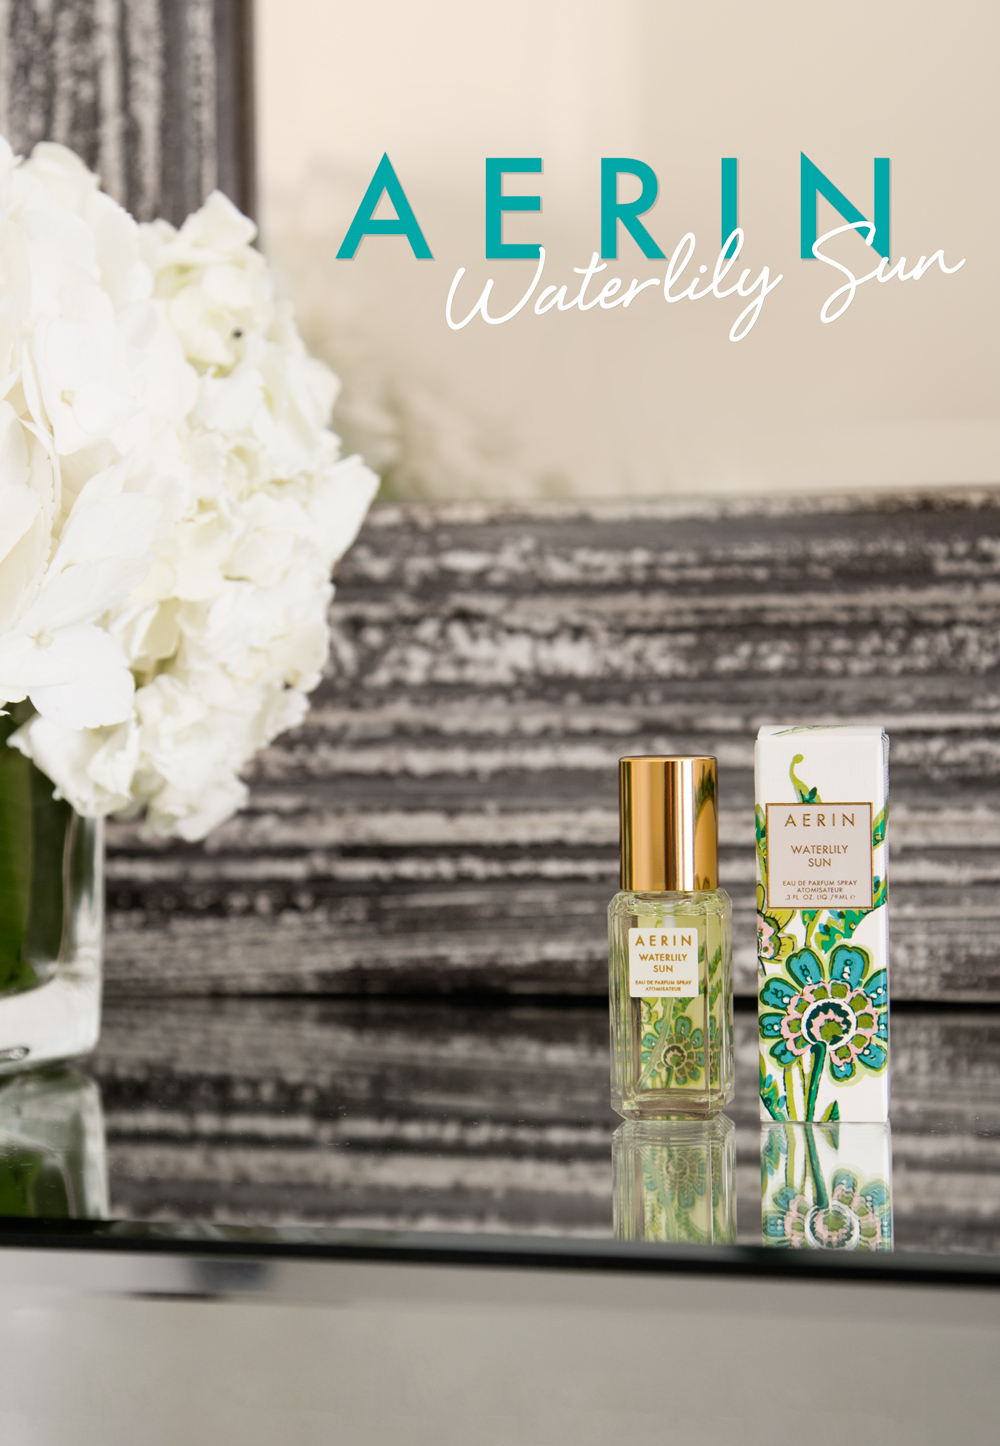 Aerin Lauder Waterlily Sun fragrance  mini was sent to over 50k subscribers.